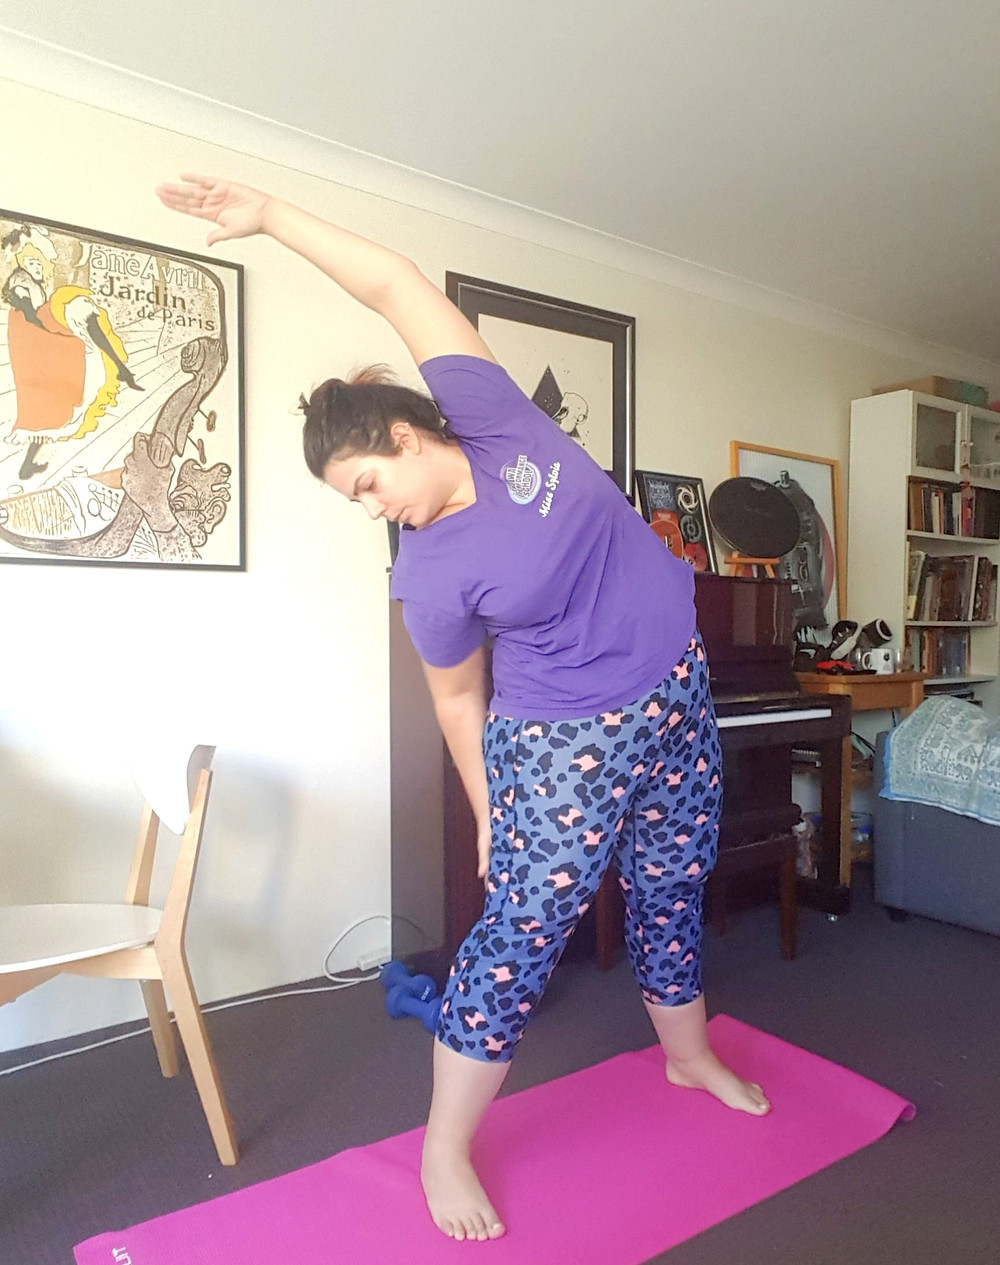 Me doing what at the time felt like an impressive yoga pose but now looking at it, it's not really. But I'm wearing pretty impressive blue leopard print leggings.